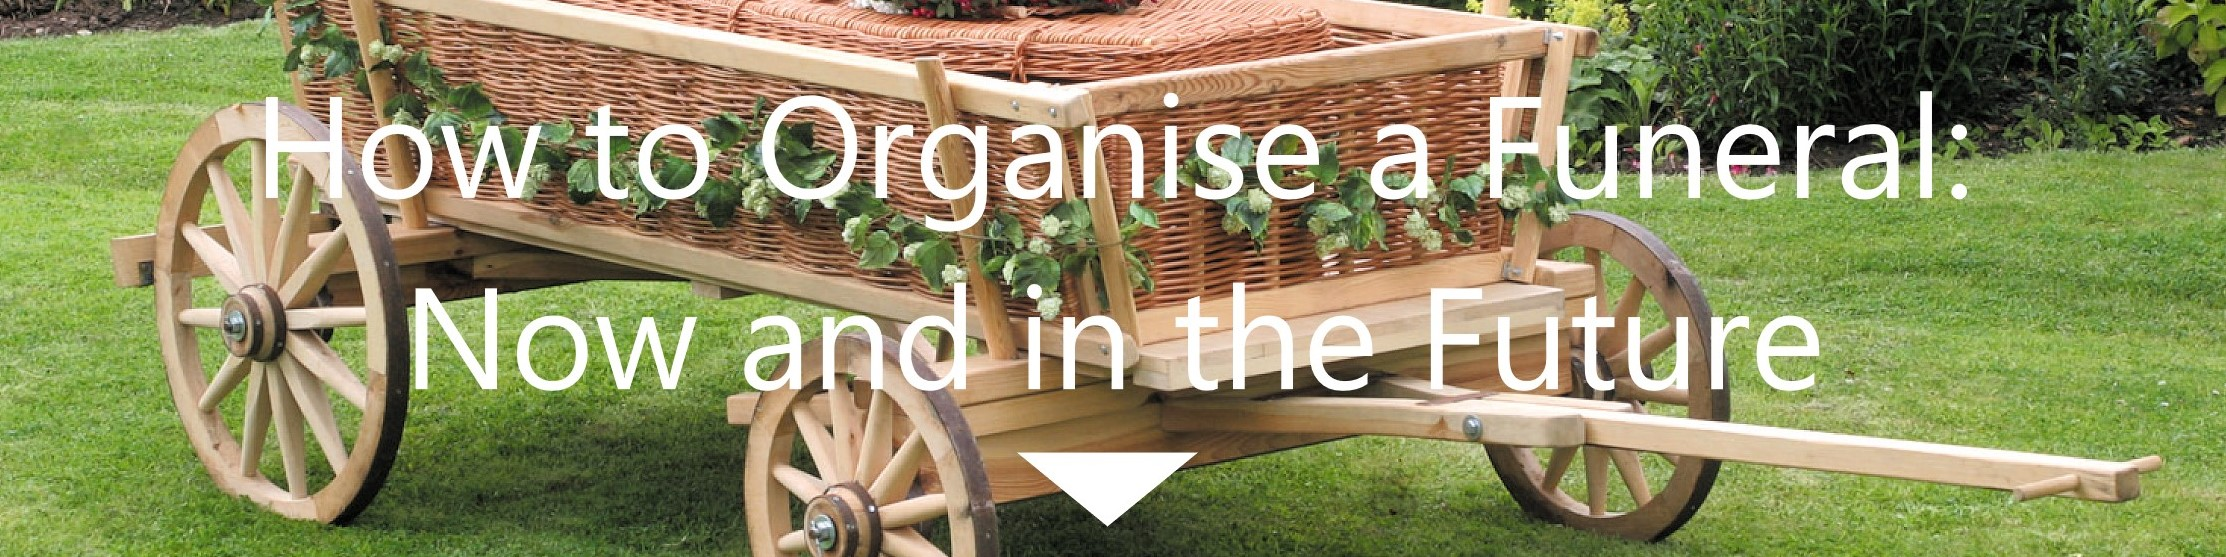 How to organise a funeral old park meadow our first and most important piece of advice when it comes to organising a funeral is that there is no rush allow yourself time to come to terms with what solutioingenieria Images